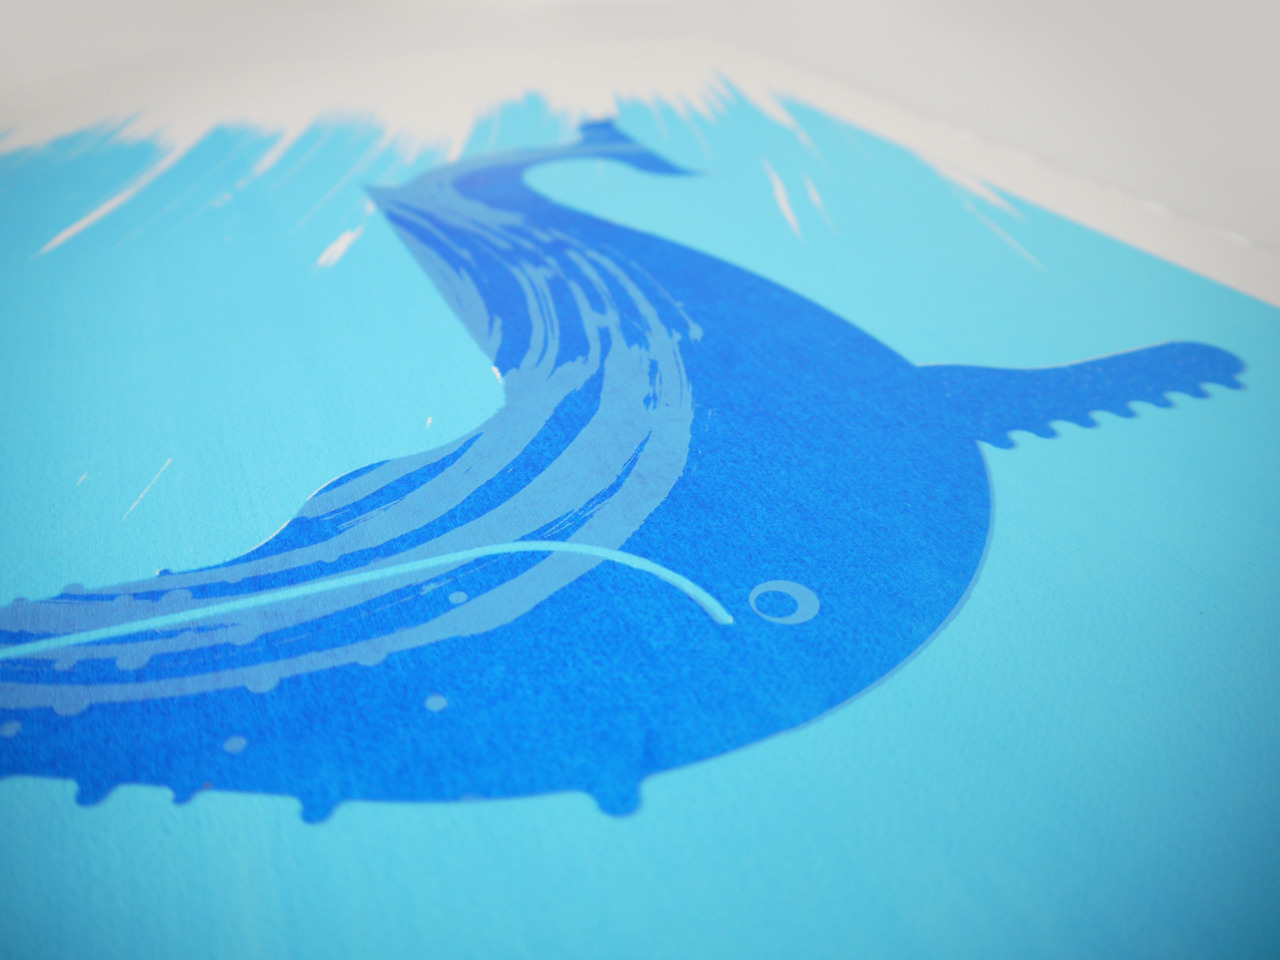 Really excited to see this sneak peak of Alan Dalby's new whale print for our show! http://www.alandalby.co.uk/